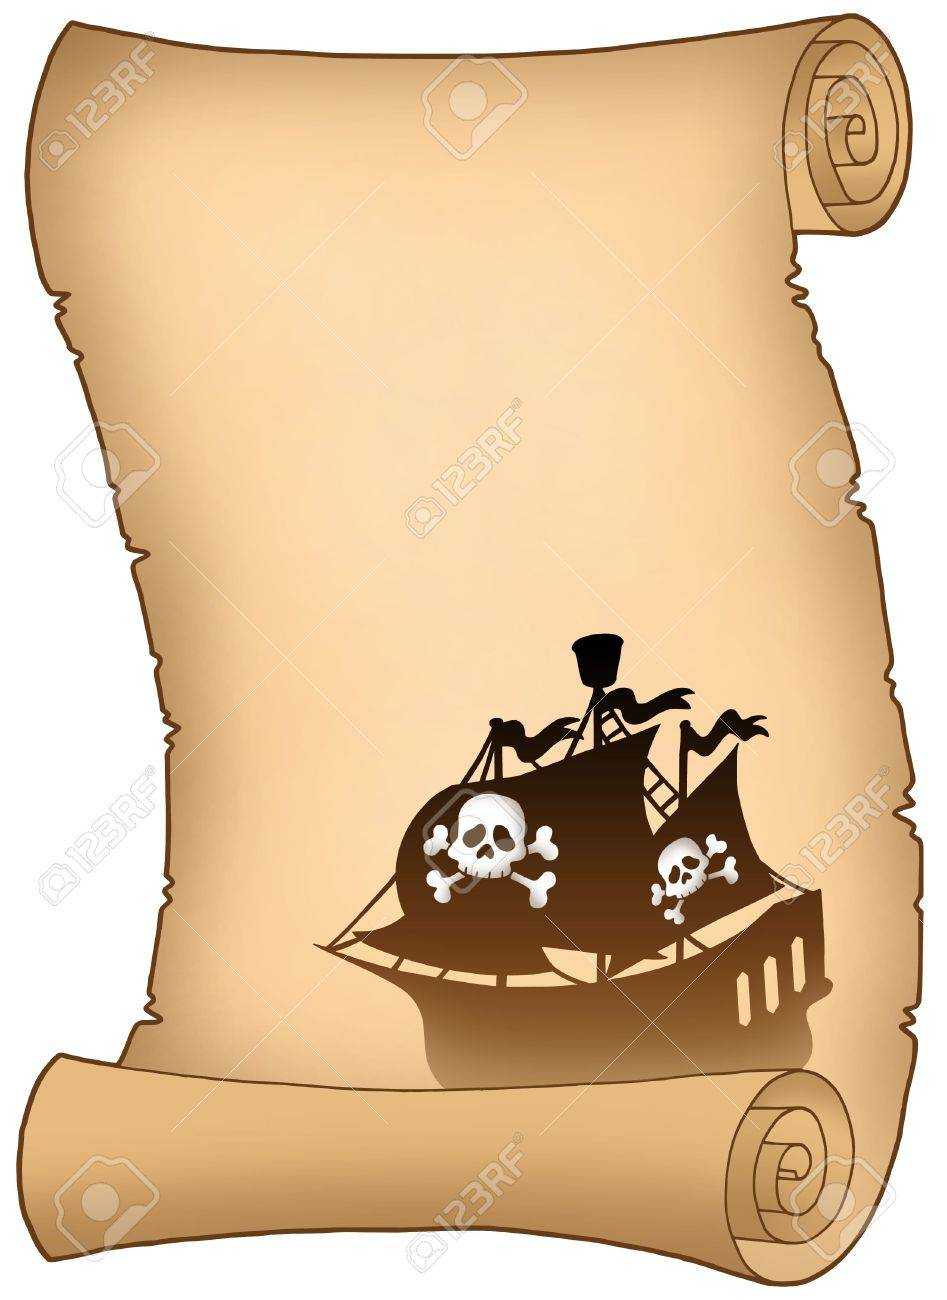 Scroll with pirate ship silhouette - color illustration. Stock Illustration - 5492773